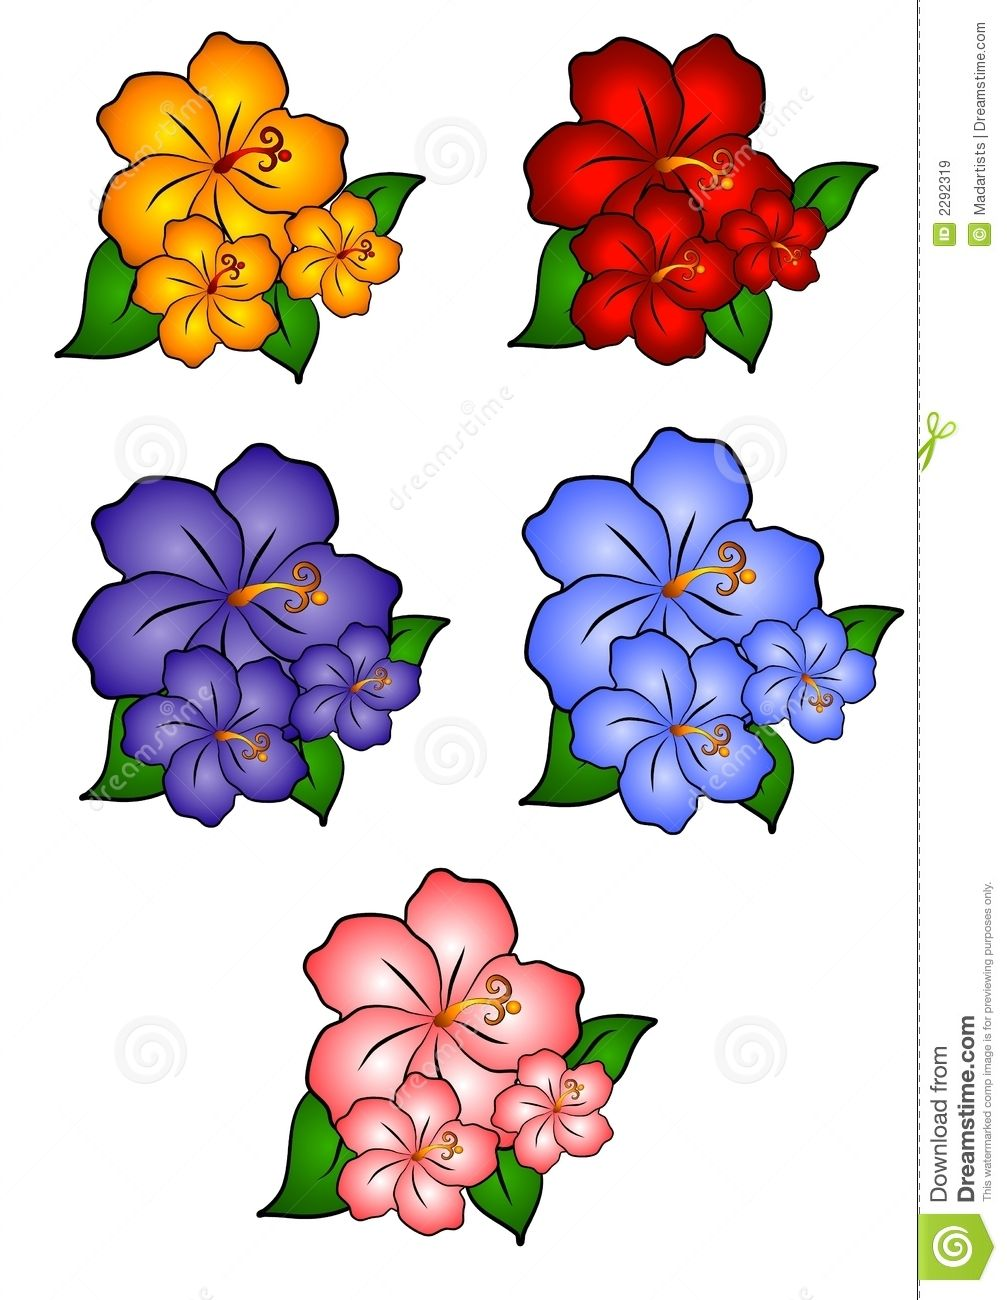 flower clip art free hawaiian flower border clip art 5 hawaiian rh pinterest com hawaiian free clip art borders hawaiian free clip art borders